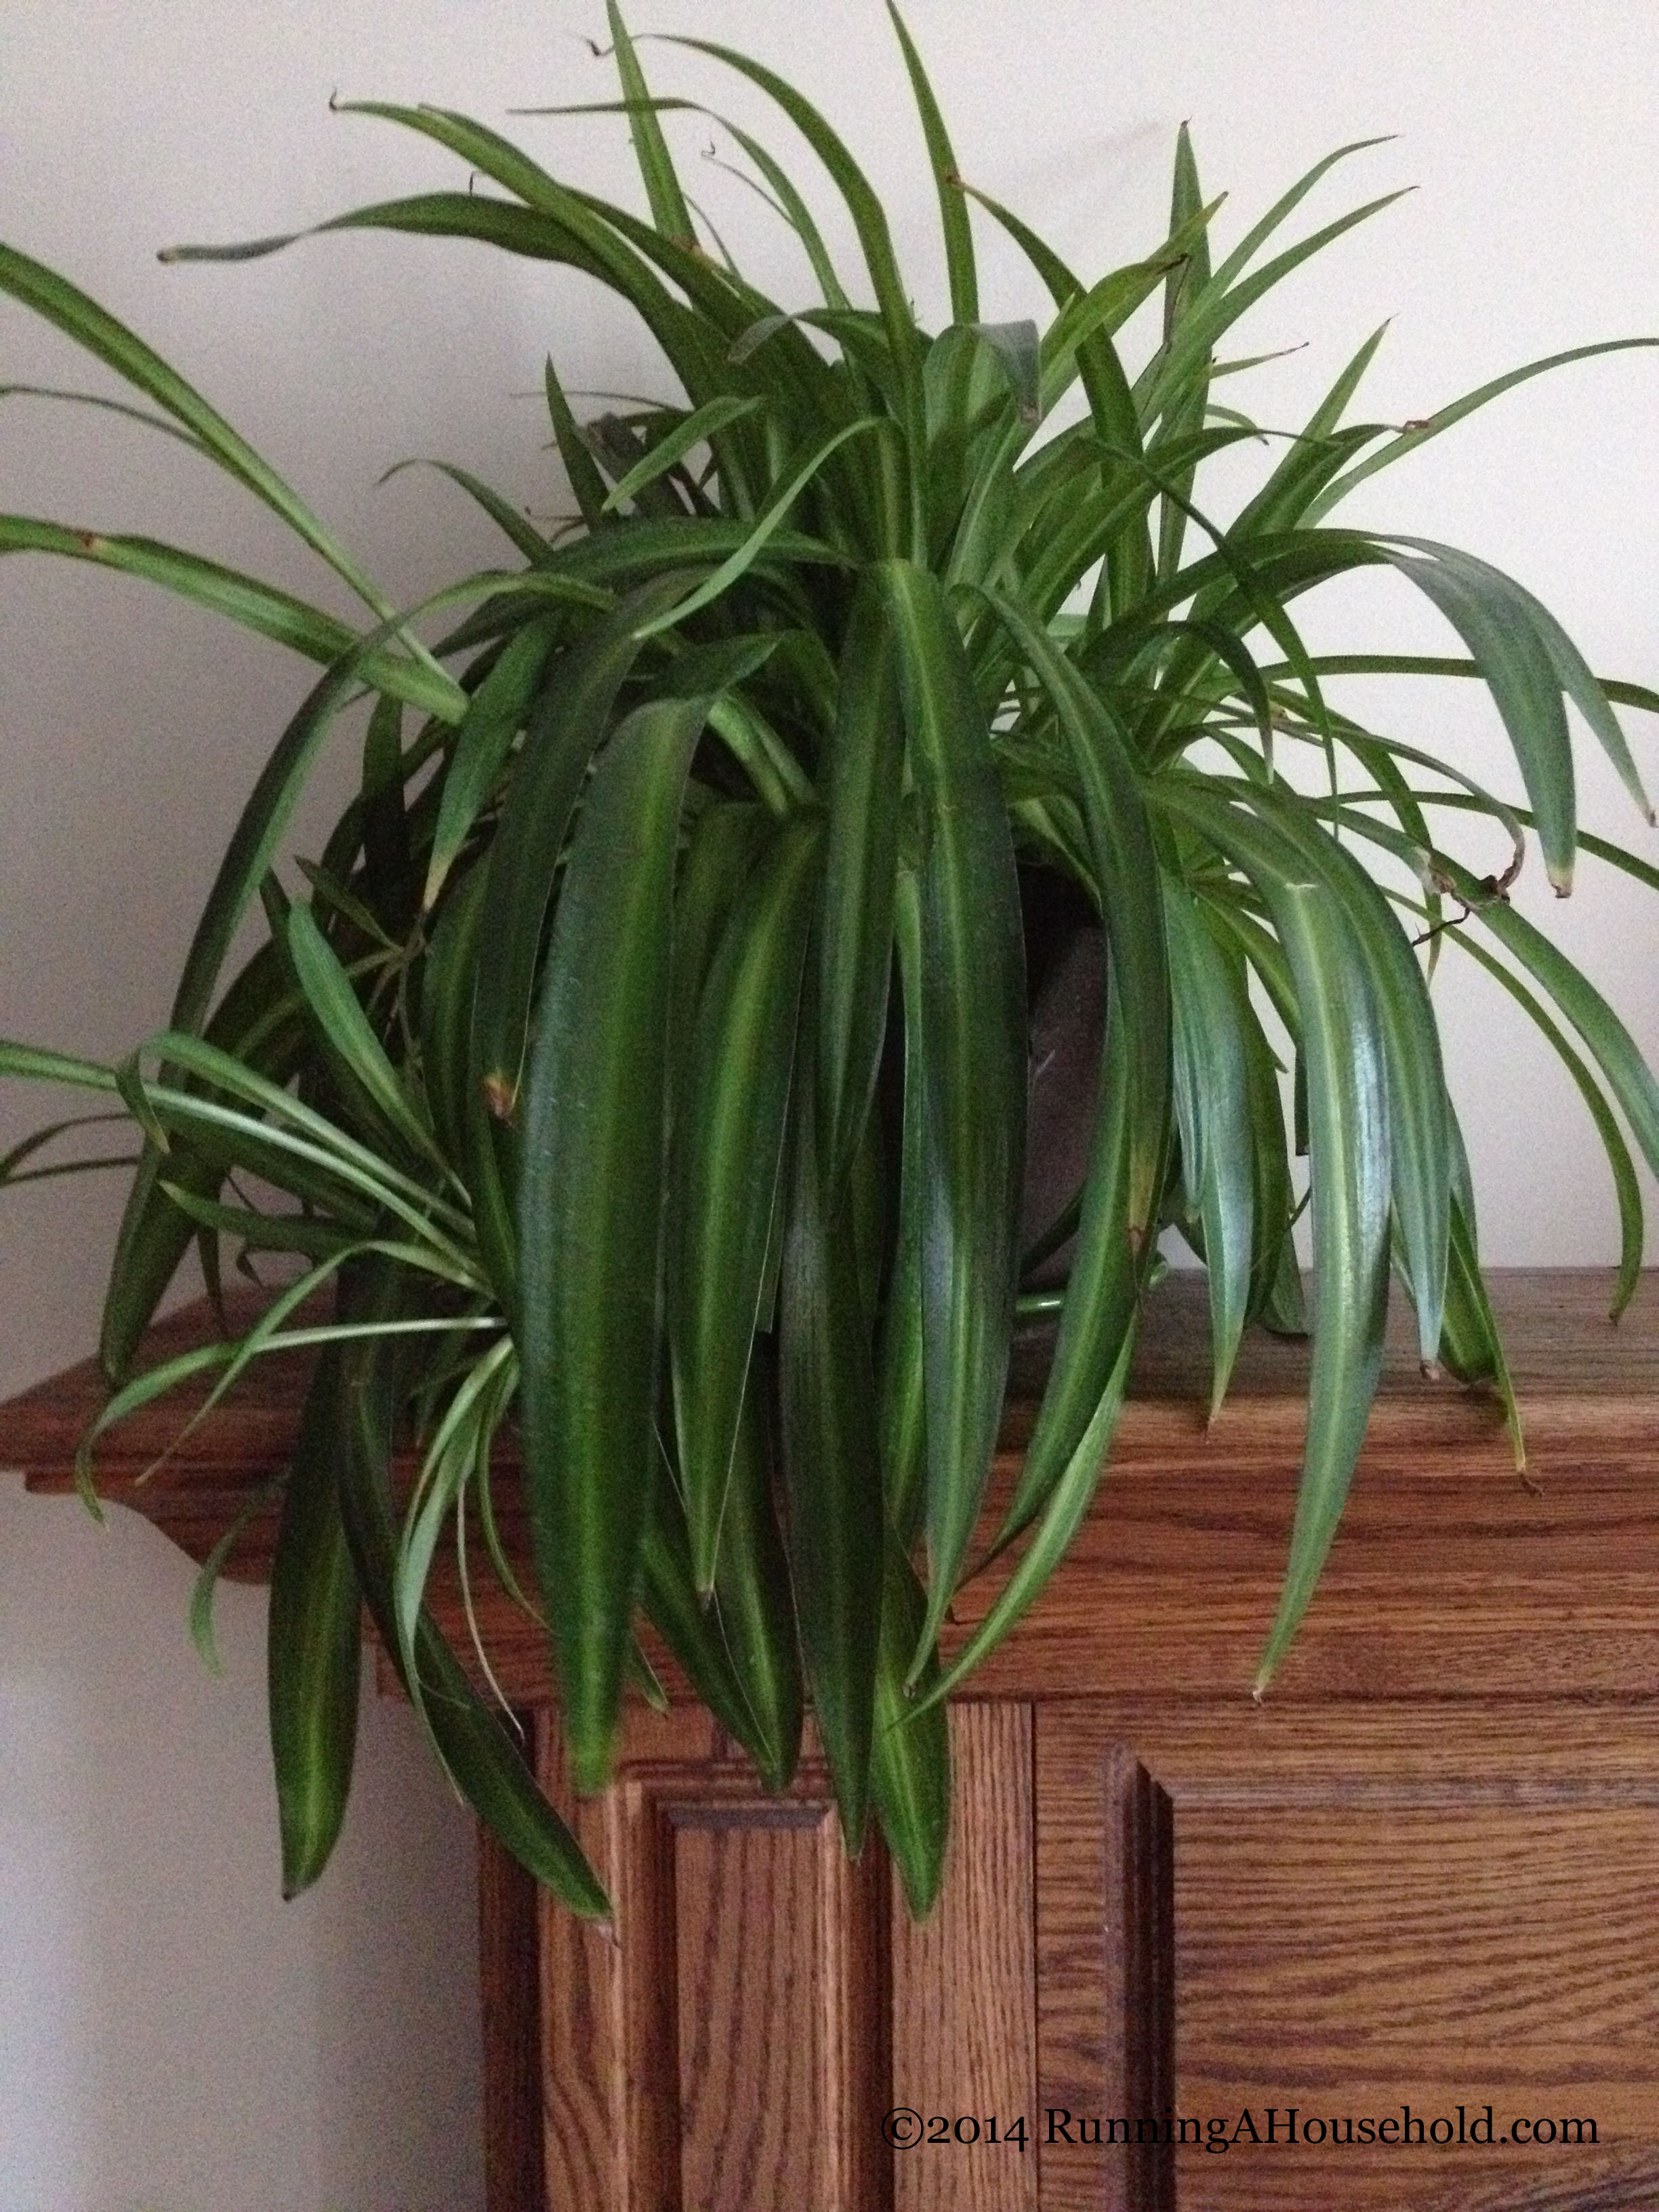 Sprucing Up Your Home with Houseplants - Running A Household